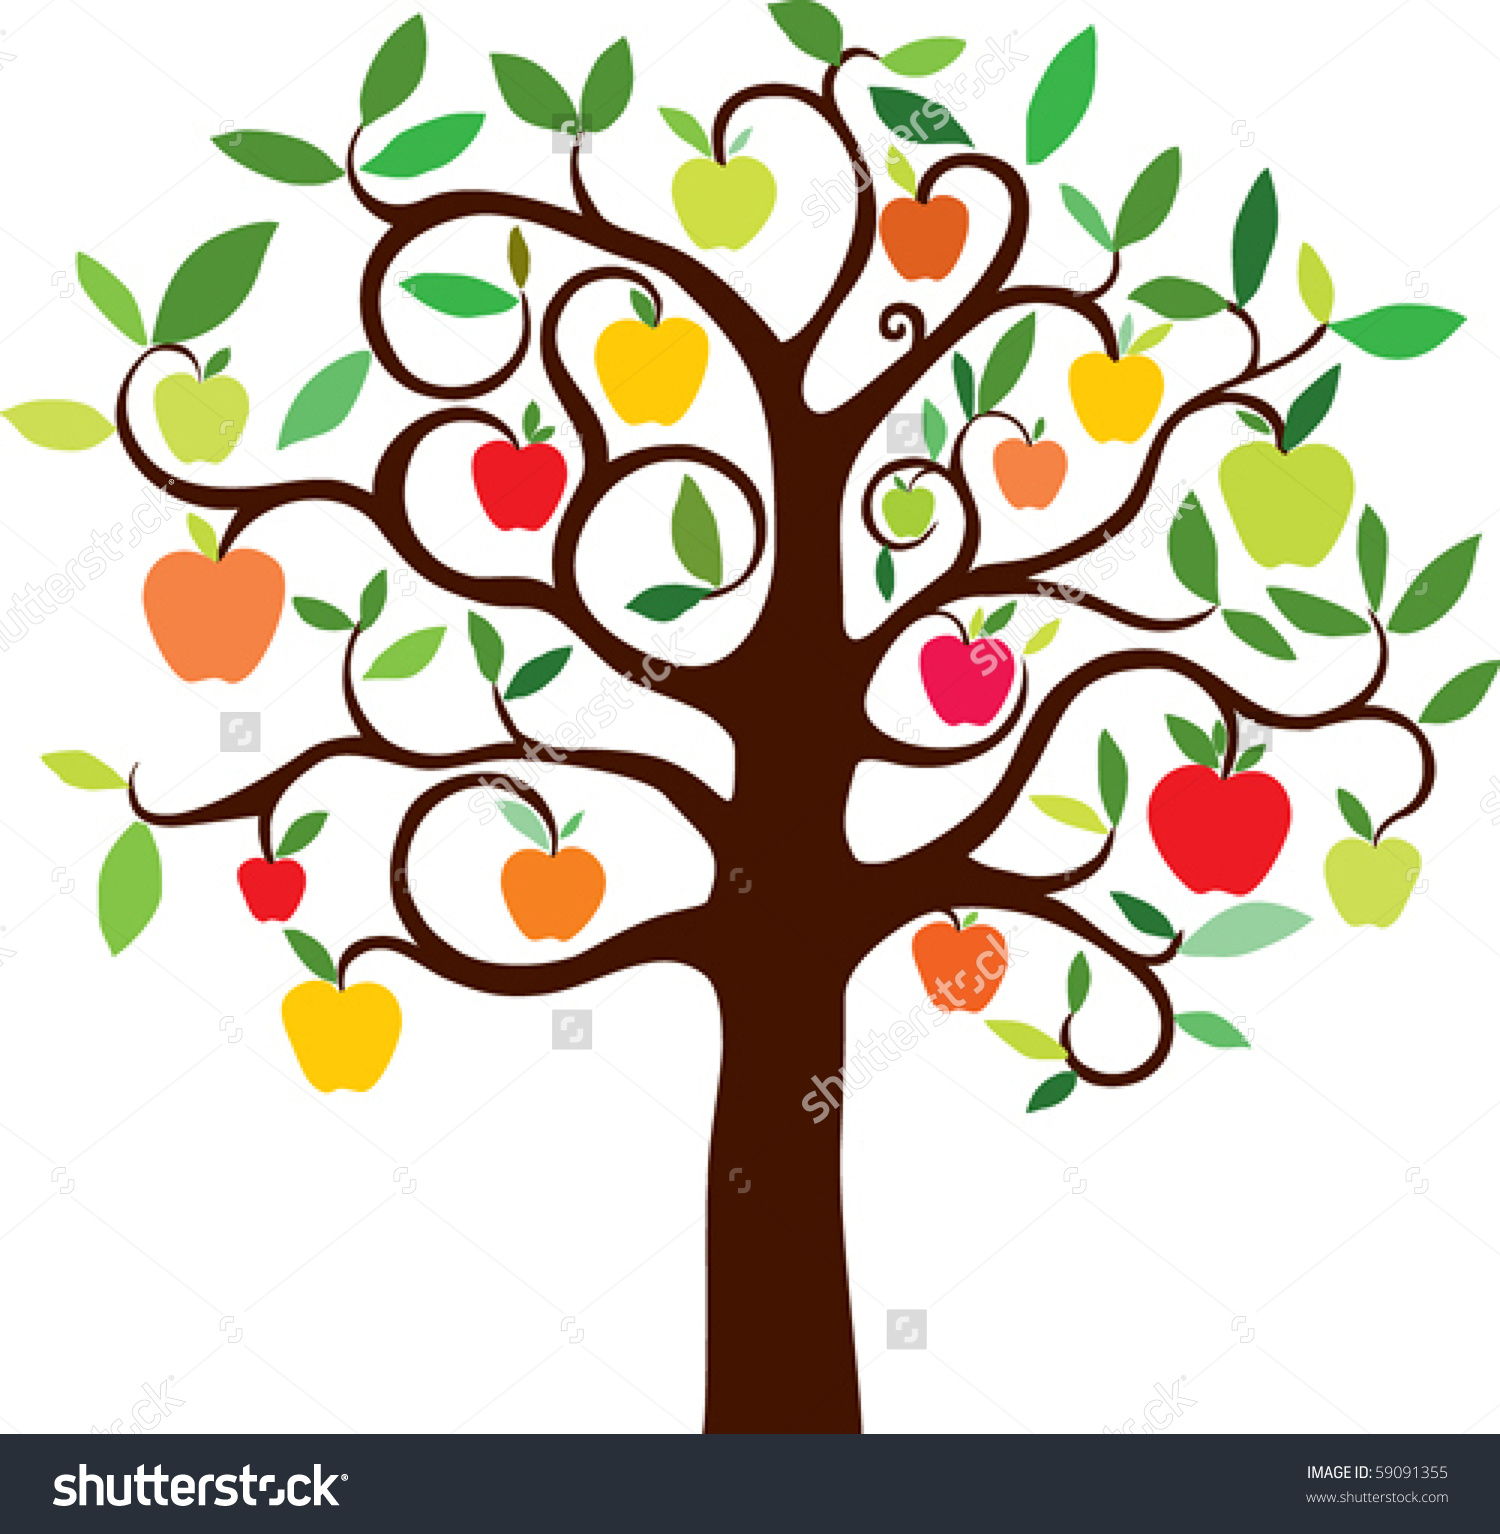 Bare apple tree clipart.